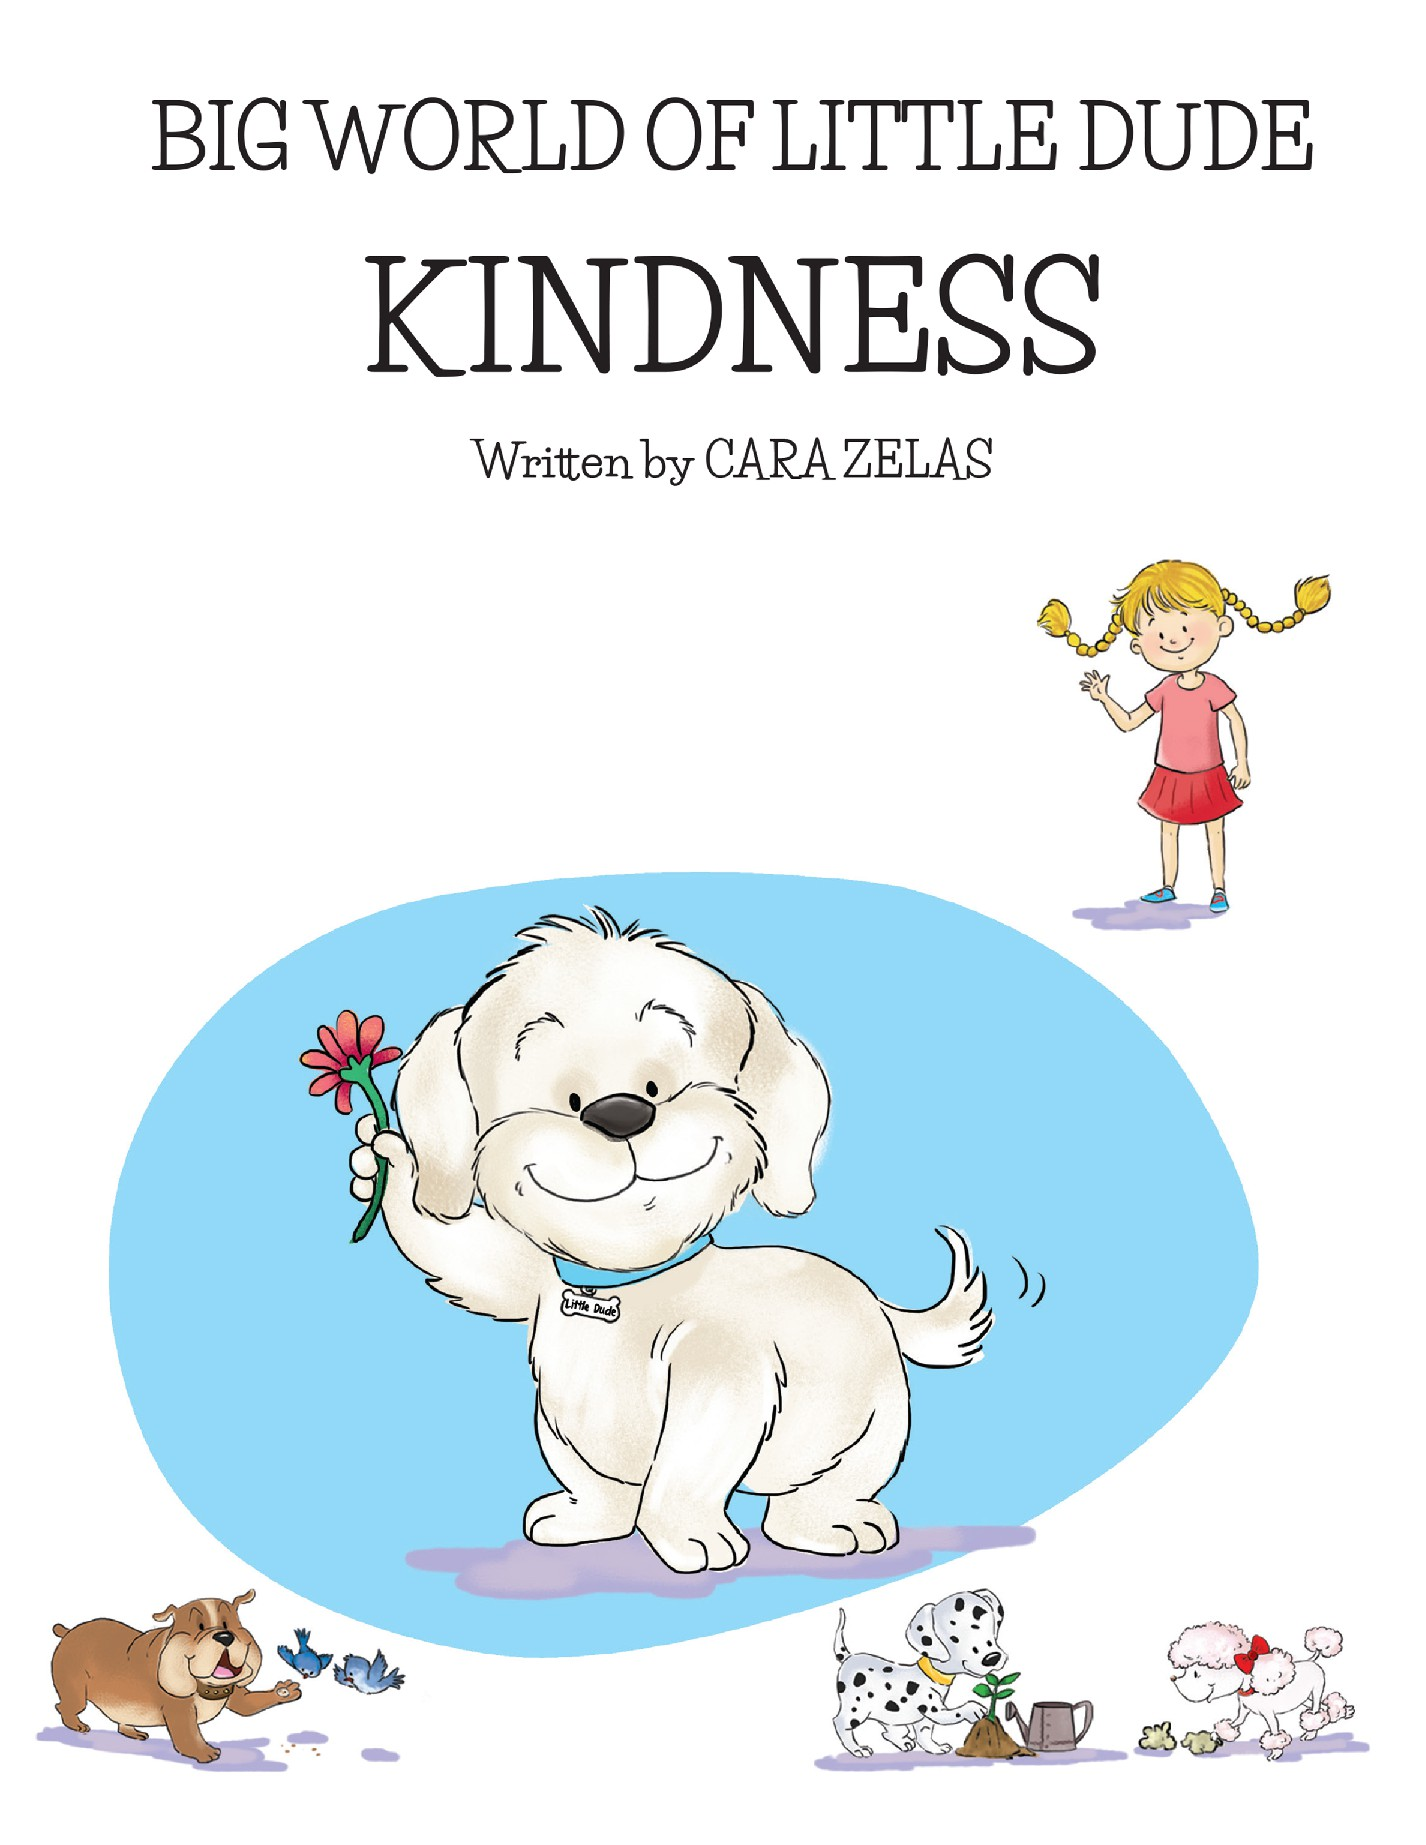 Sunday Story Time with Cara Zelas (author of The Big World of Little Dude: Kindness)